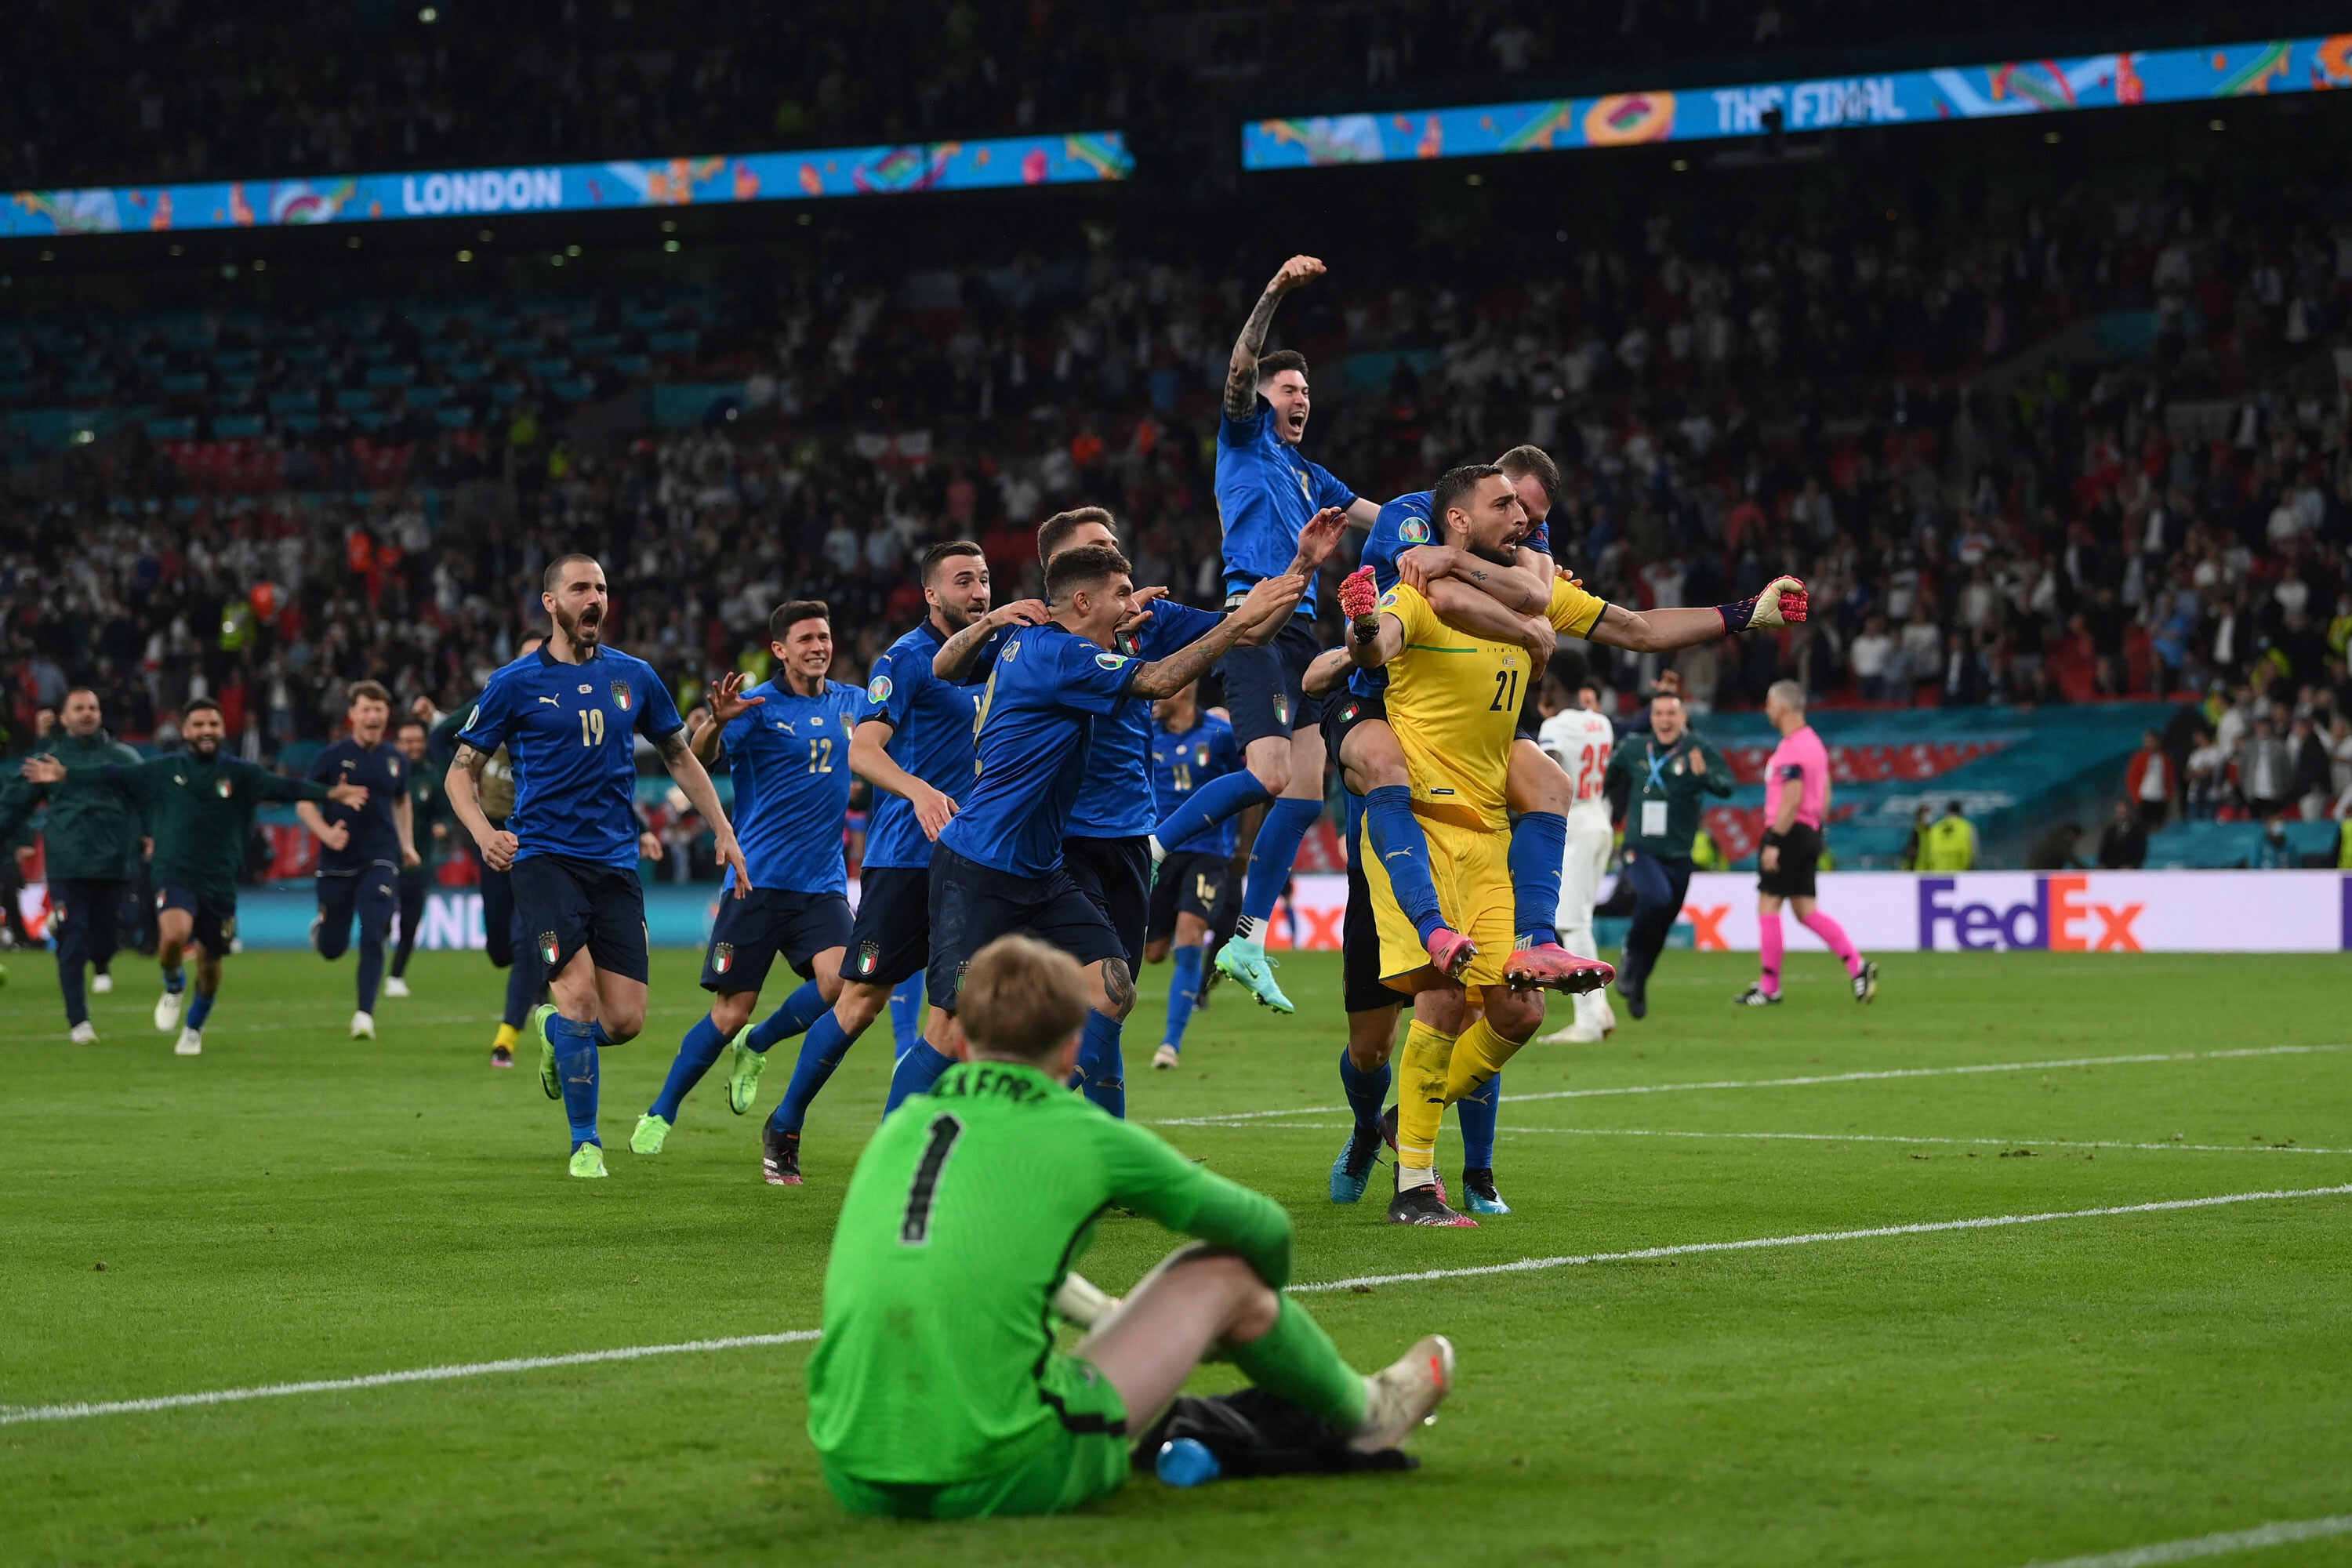 Euro 2020: 'It's come home to Rome' as Azzurri makes triumphant return to Italy